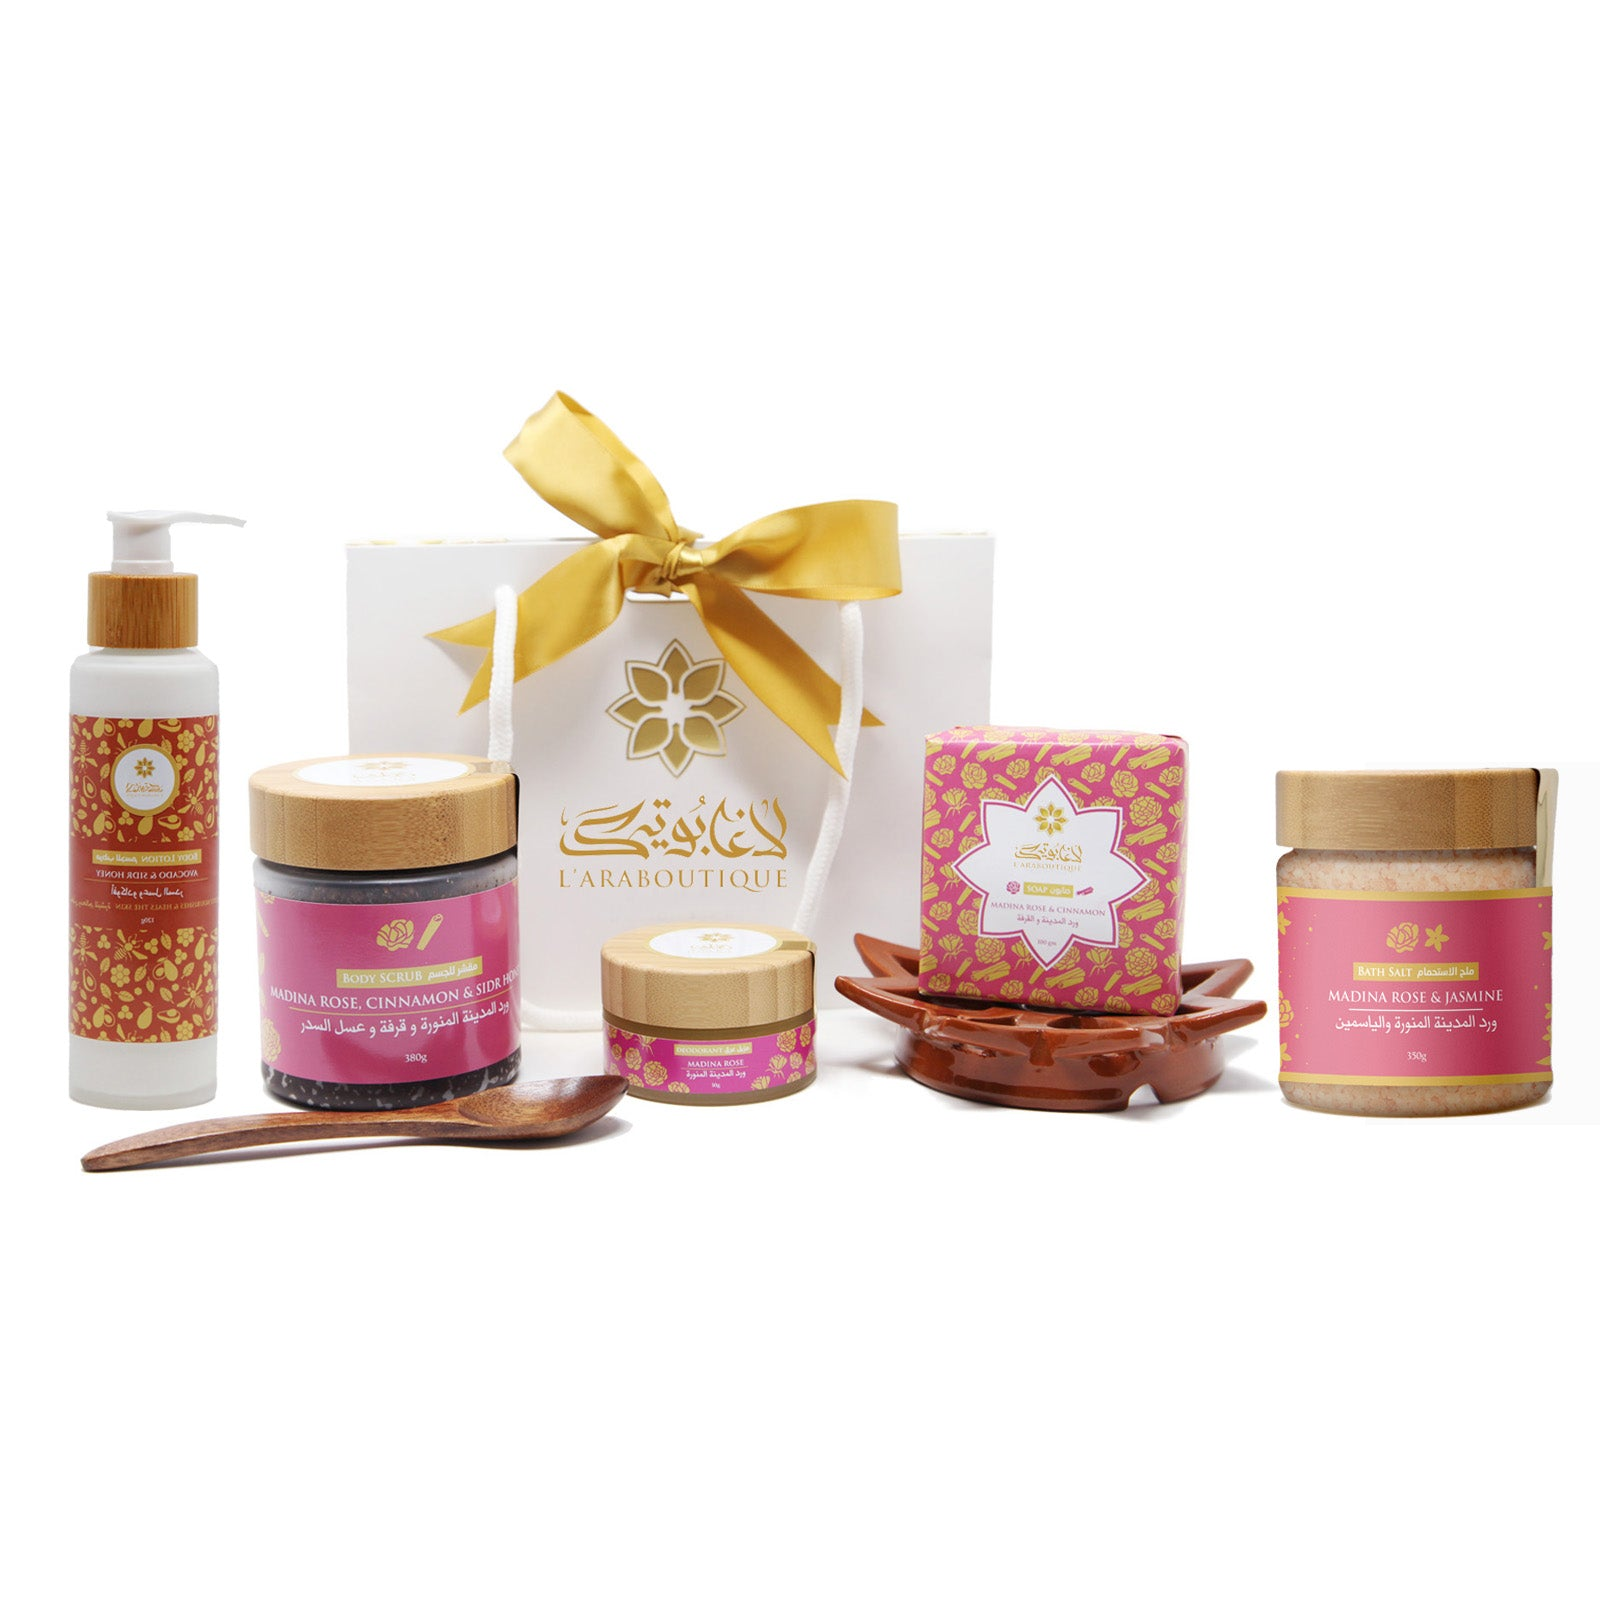 The L'Araboutique Body Care Collection